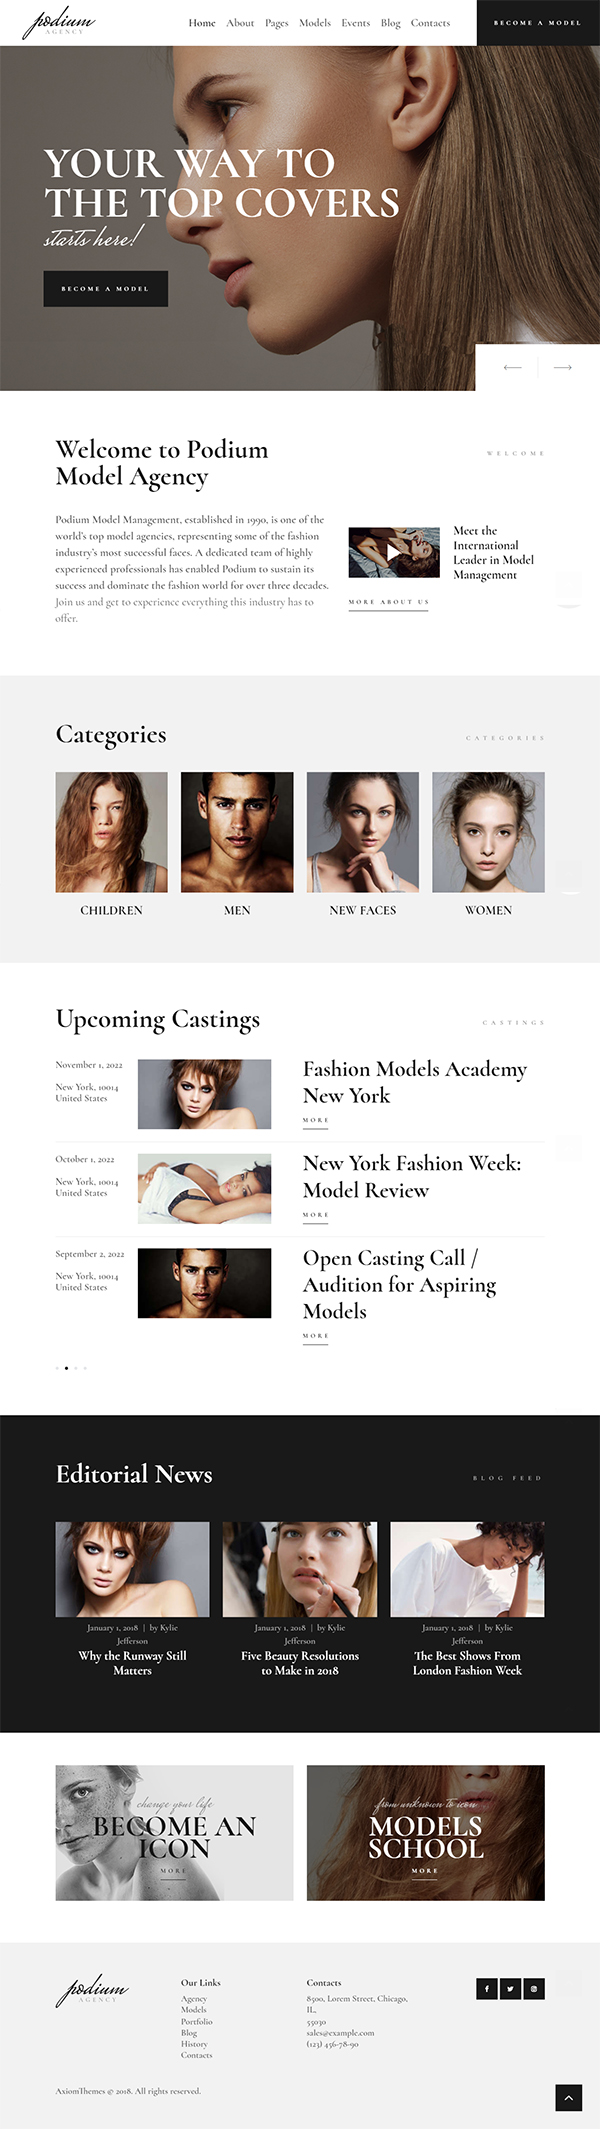 Podium | Model Agency WordPress Theme